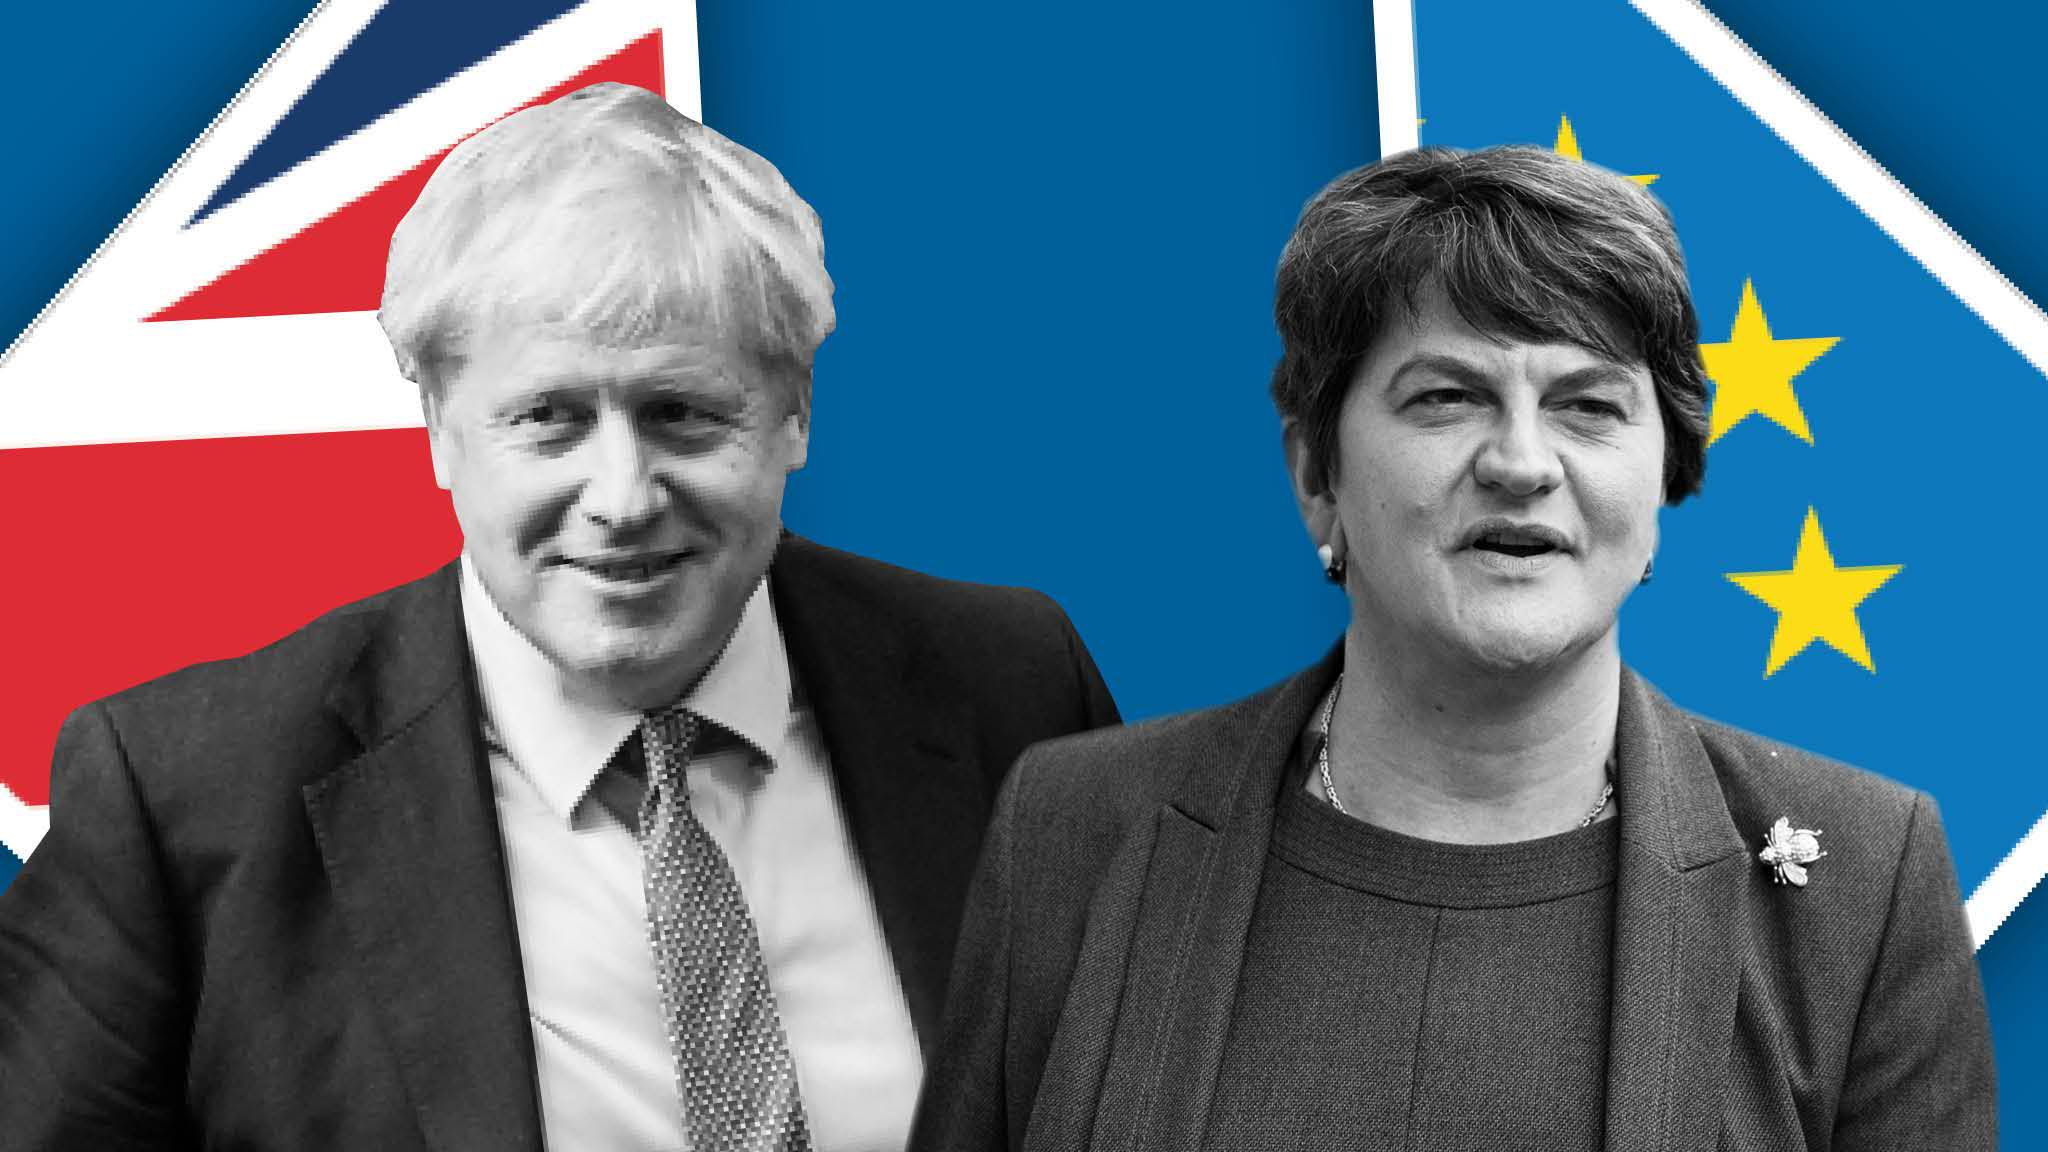 Northern Ireland's DUP faces hard choices on trust and Brexit